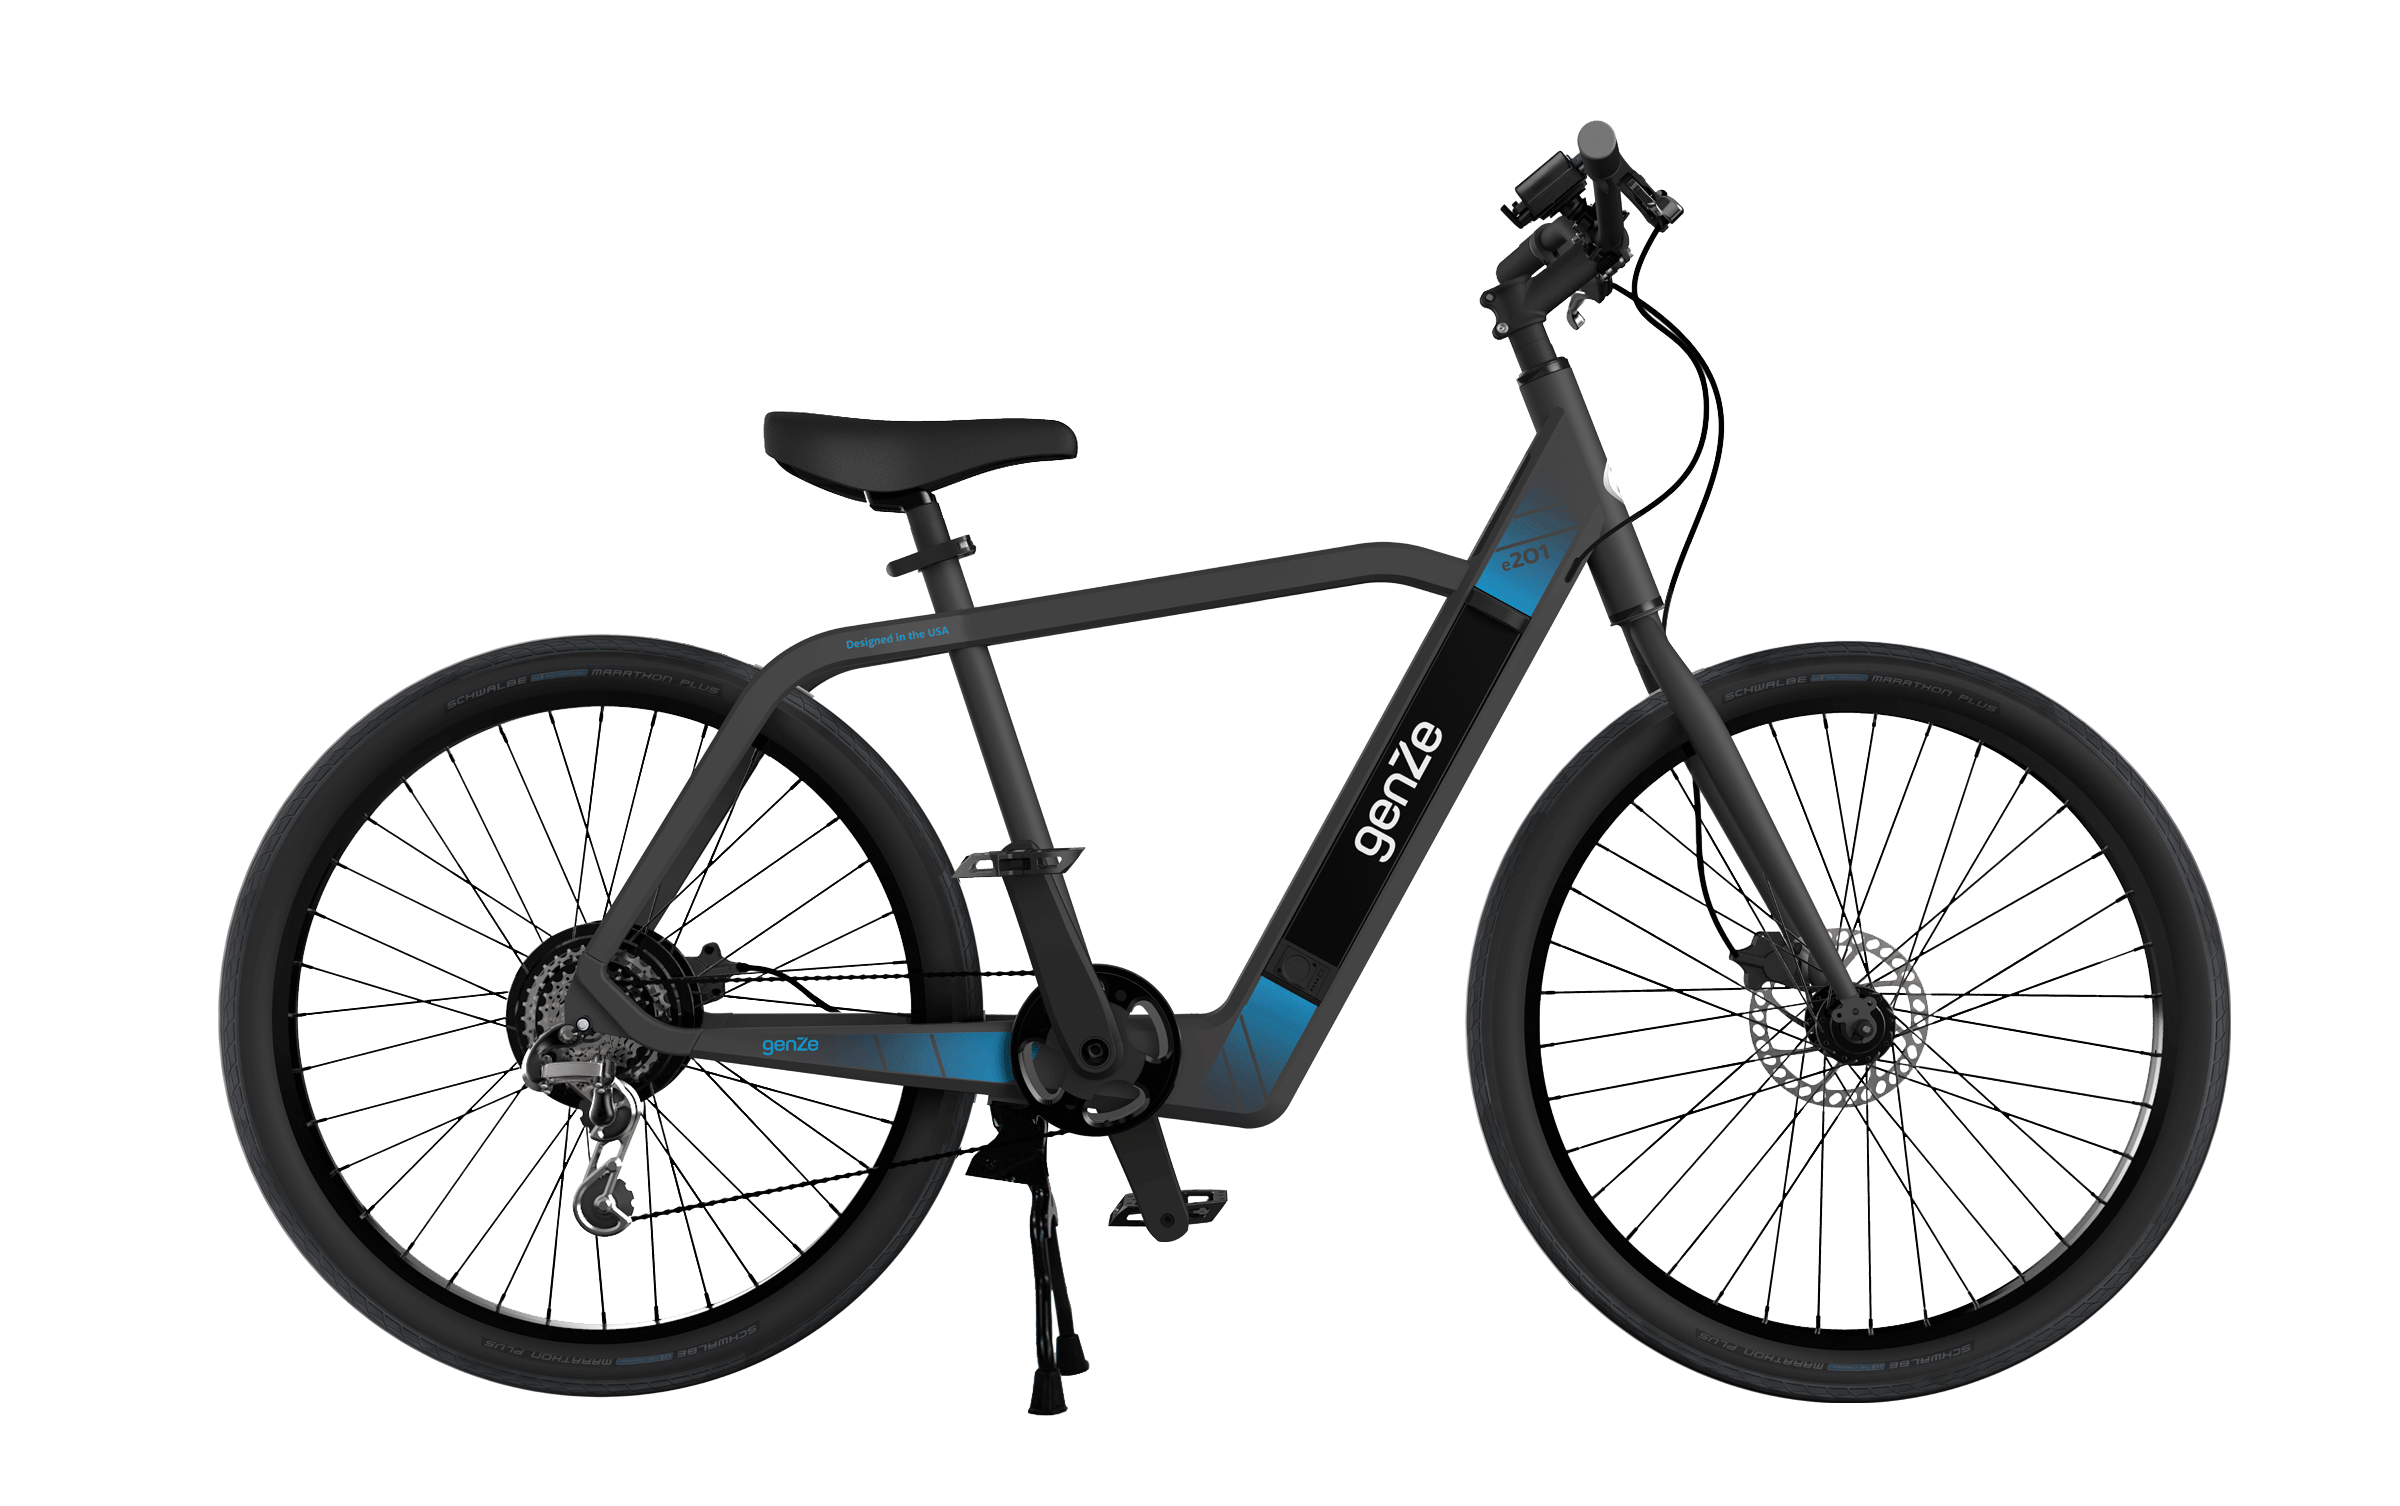 Cycle vector top view. Electric scooters bikes genze